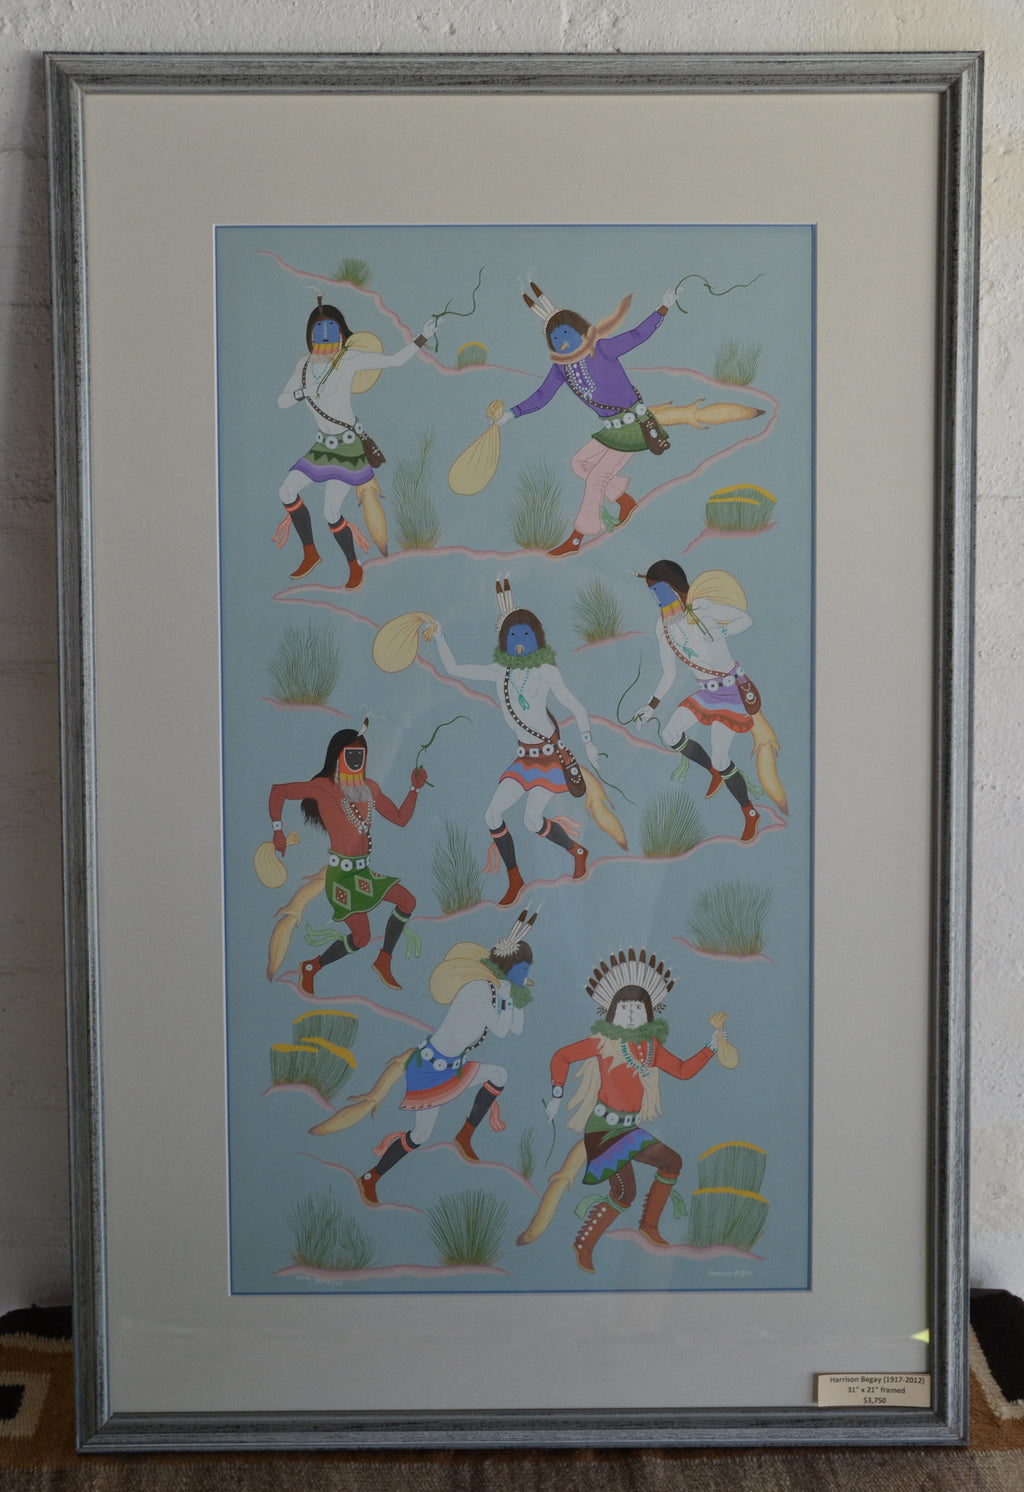 Painting - Navajo Ceremonial Night Chant : Harrison Begay Sr. - Getzwiller's Nizhoni Ranch Gallery